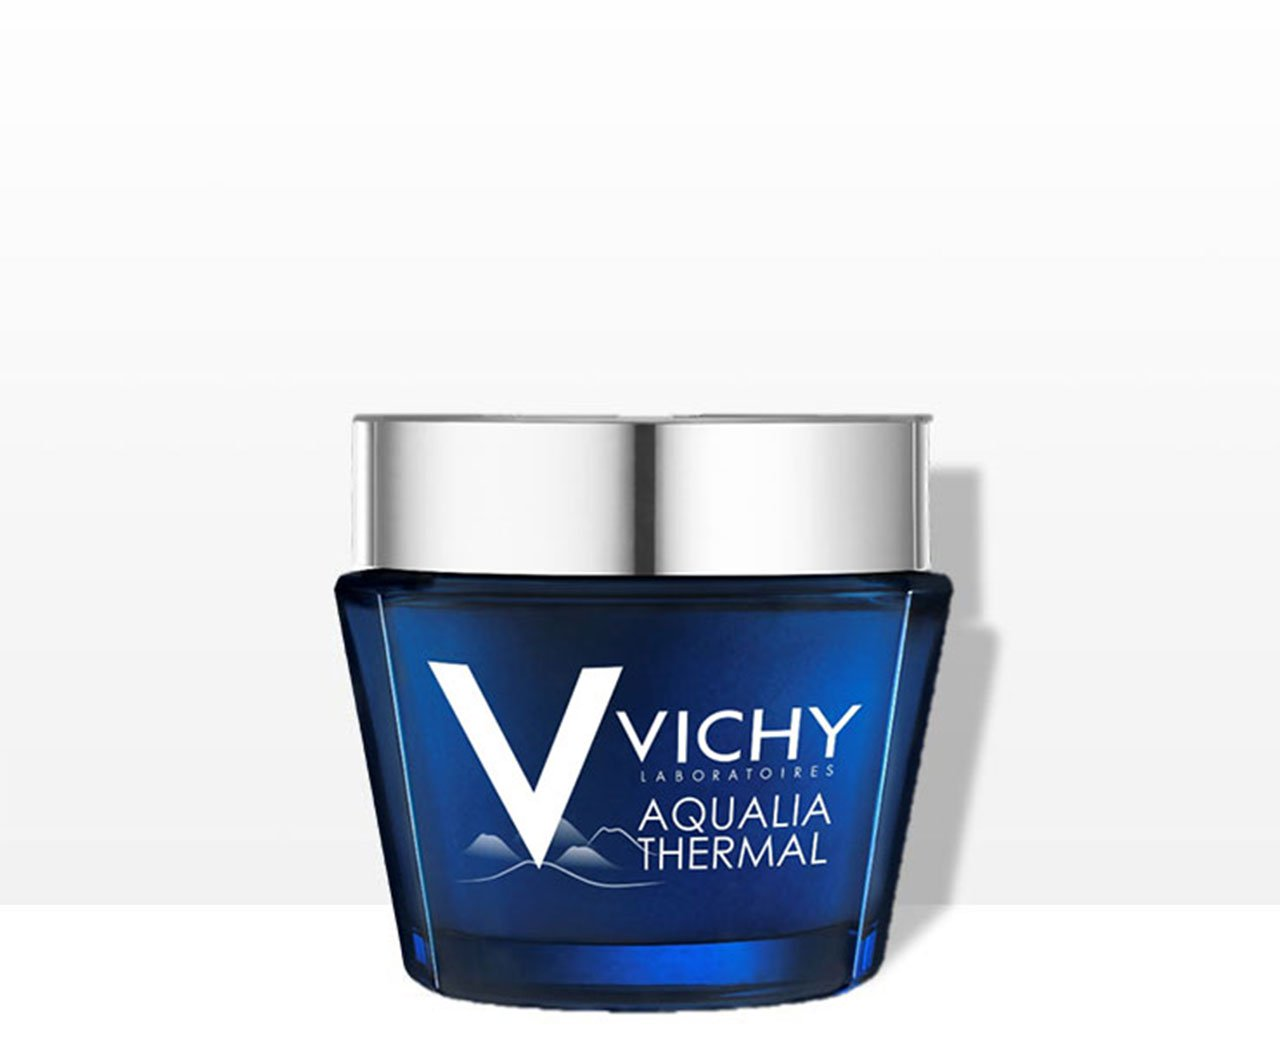 Vichy Aqualia Thermal Night Spa Replenishing Radiance Enhancing Sleeping Mask